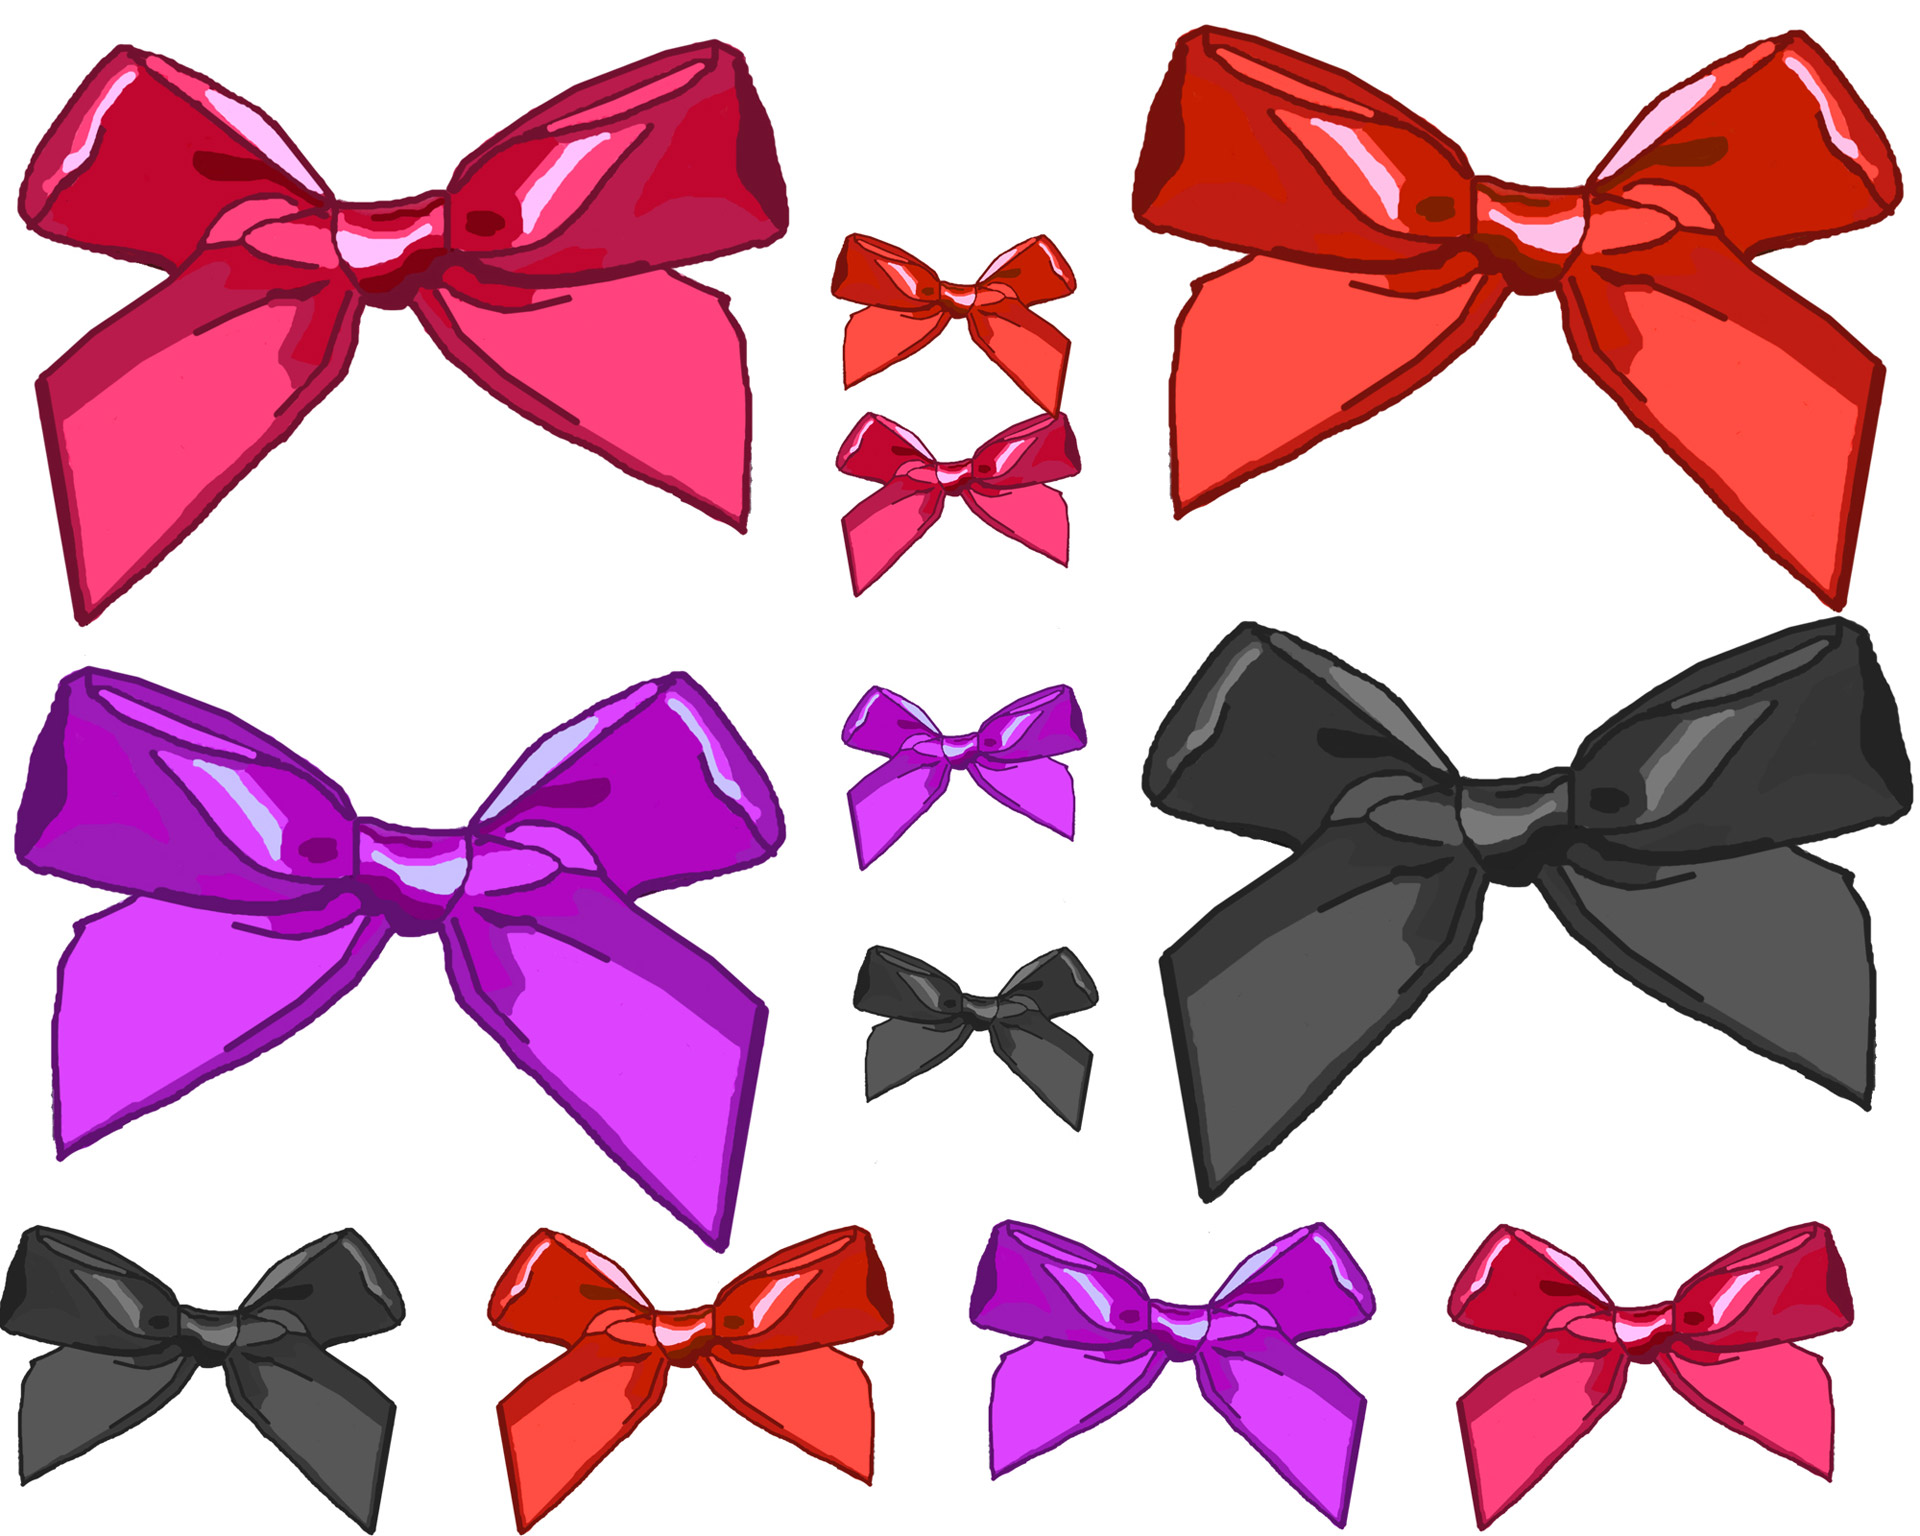 Various Size Clip Art Bows Free Stock Photo - Public Domain Pictures